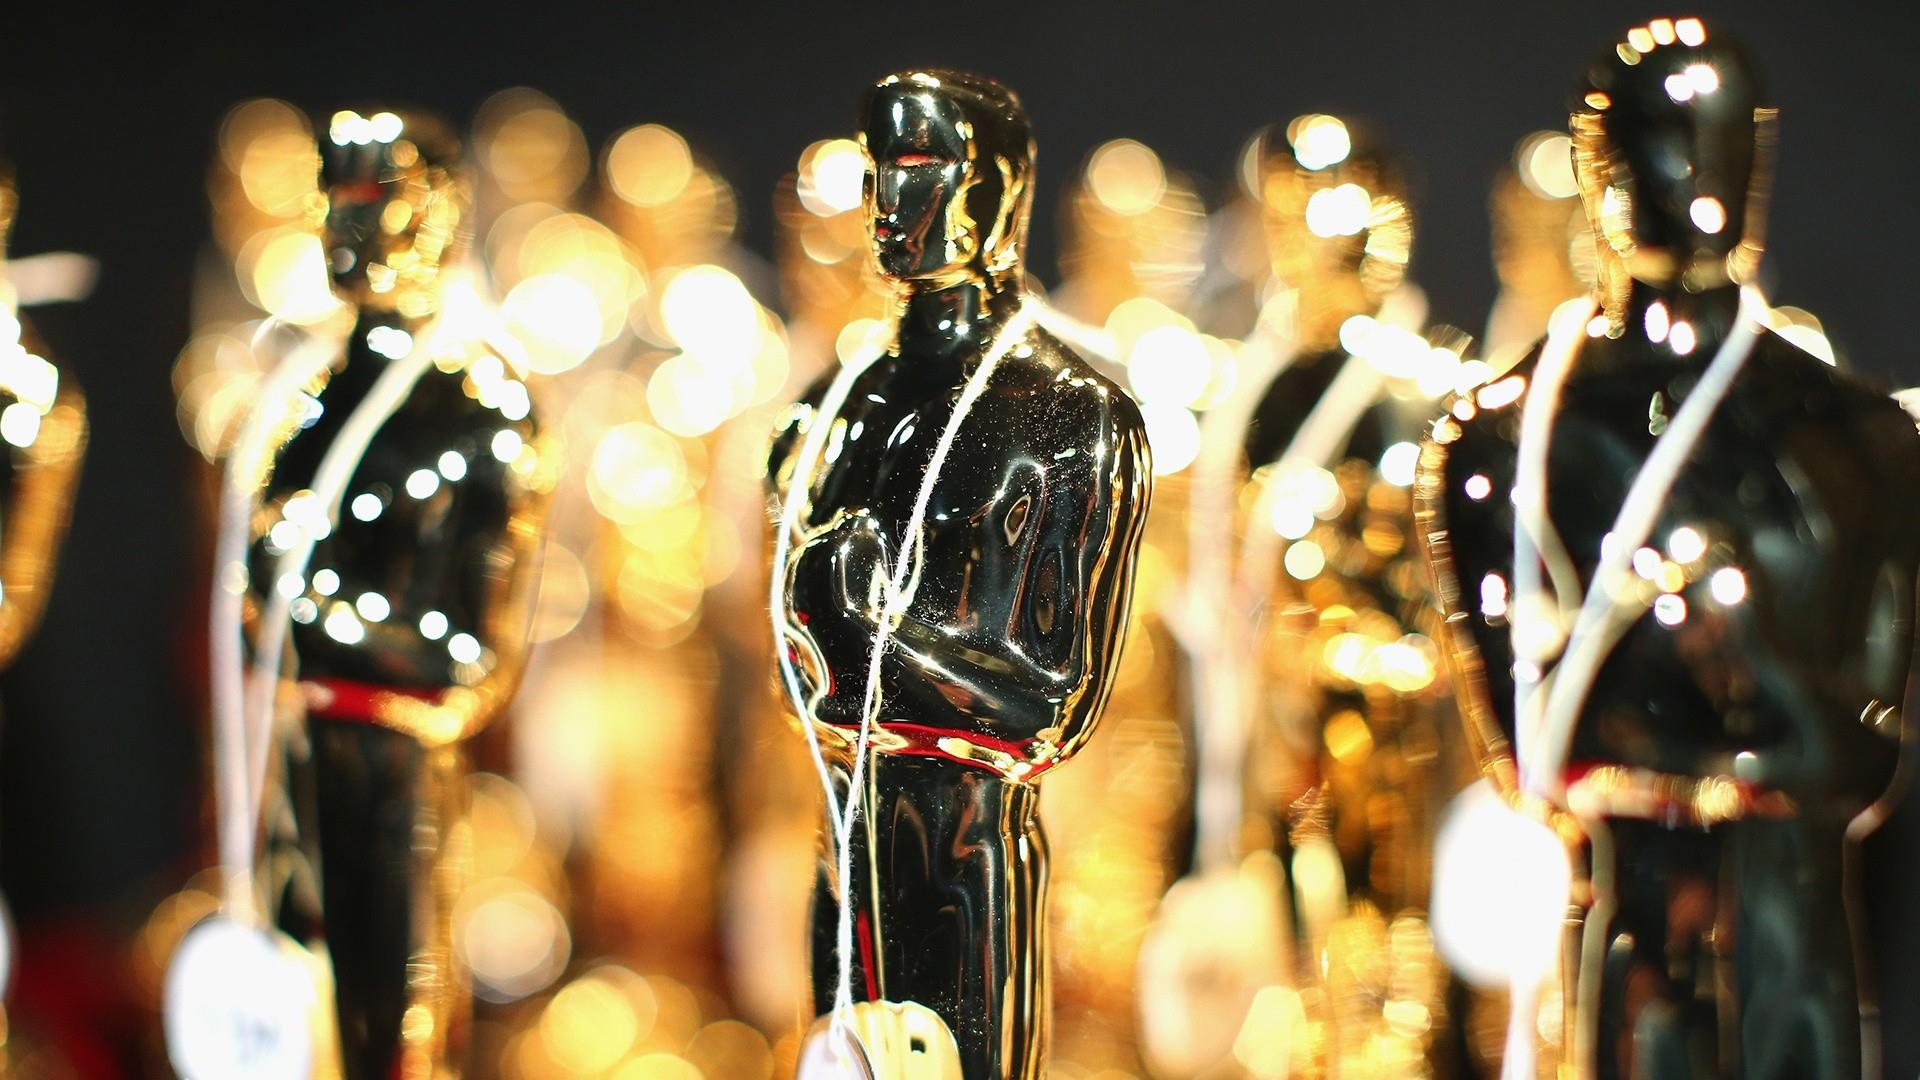 Oscars preview: What to expect after controversies